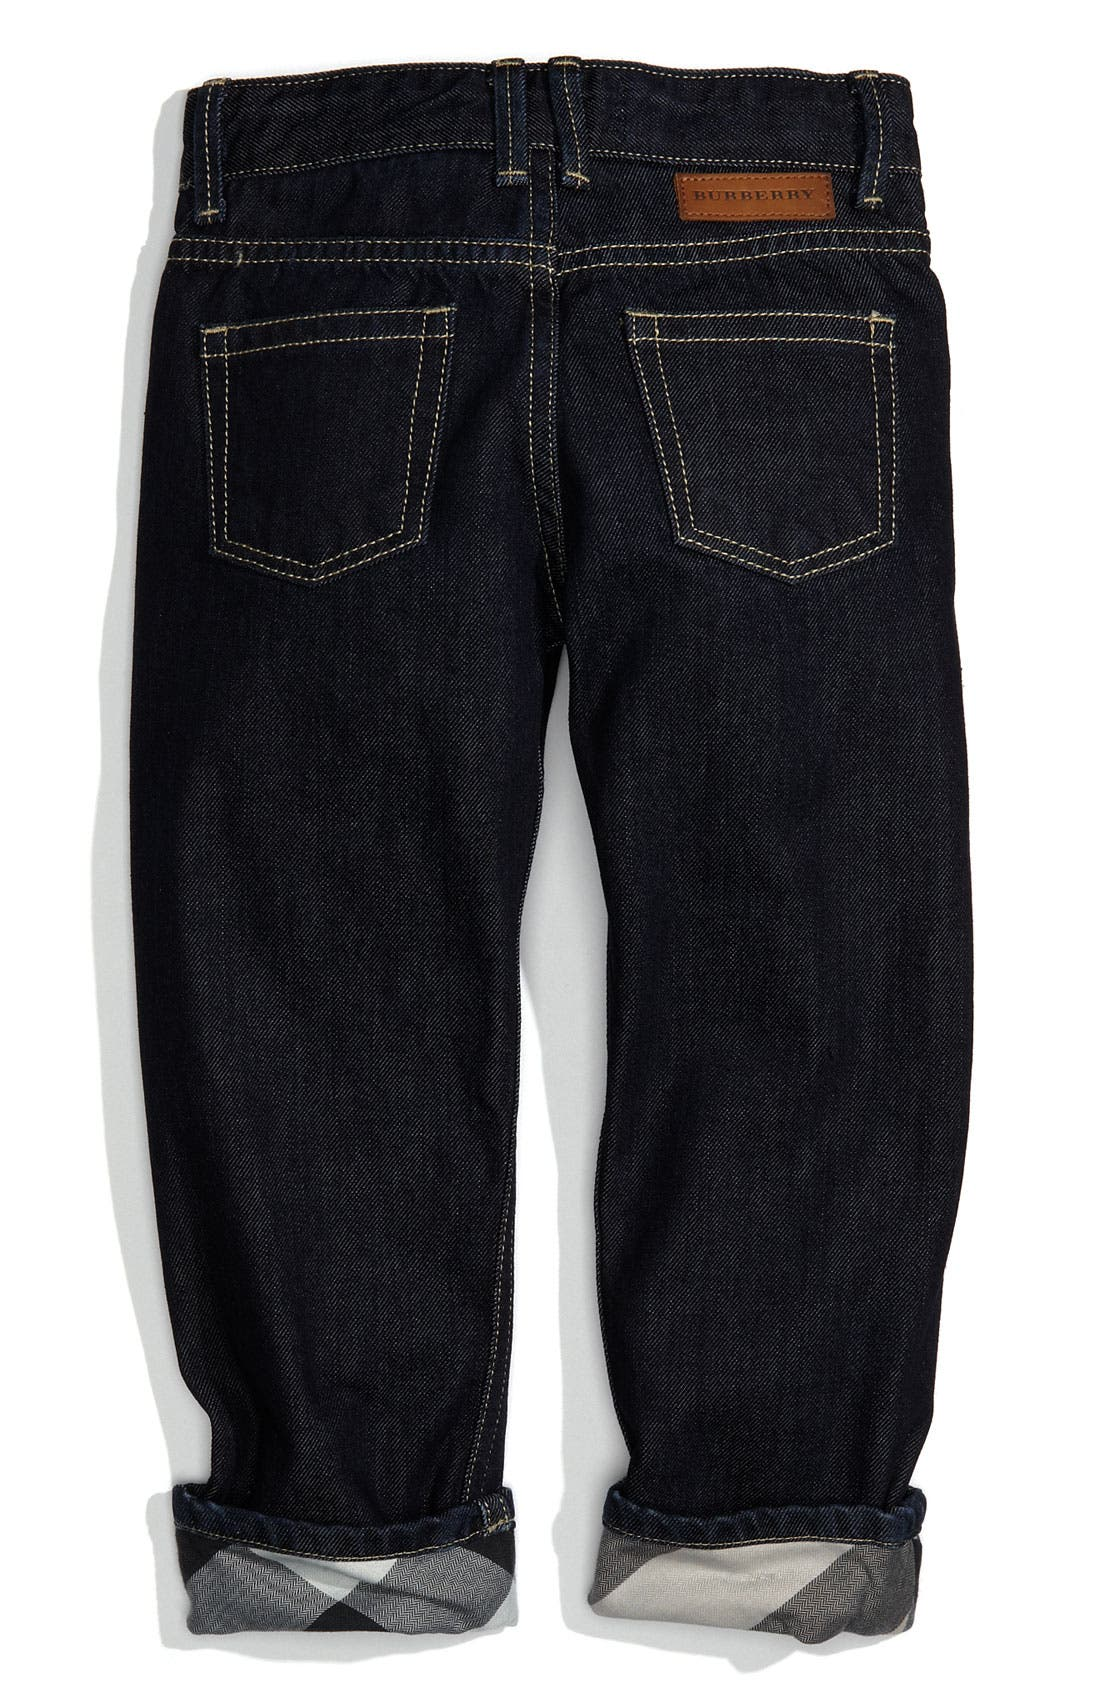 Alternate Image 1 Selected - Burberry Check Lined Jeans (Toddler)